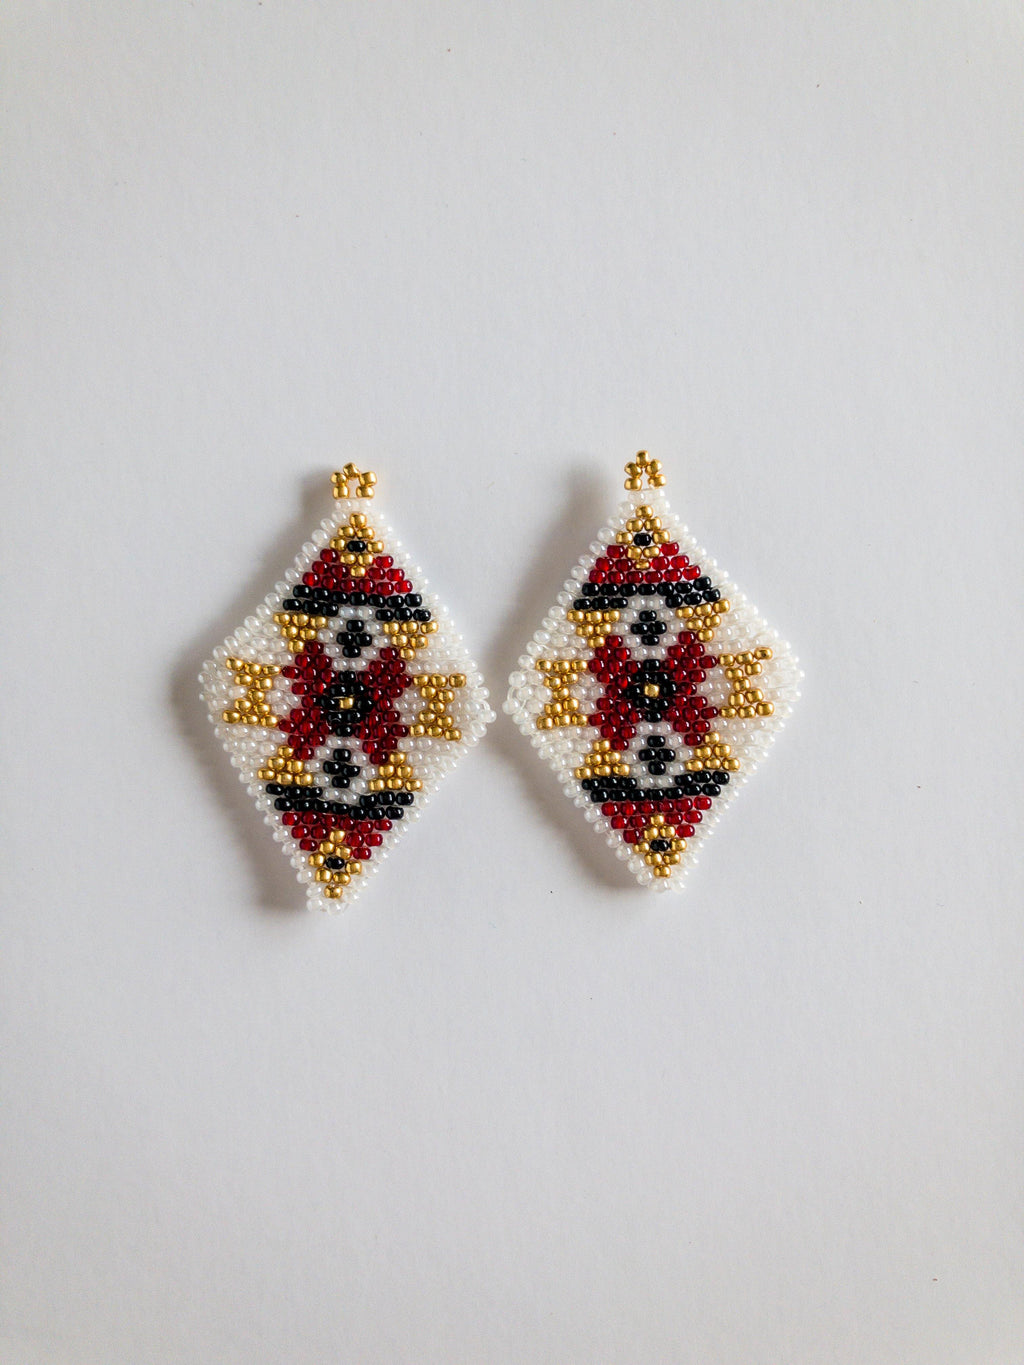 Diamond shaped seed bead earrings with red, gold, black and white beads